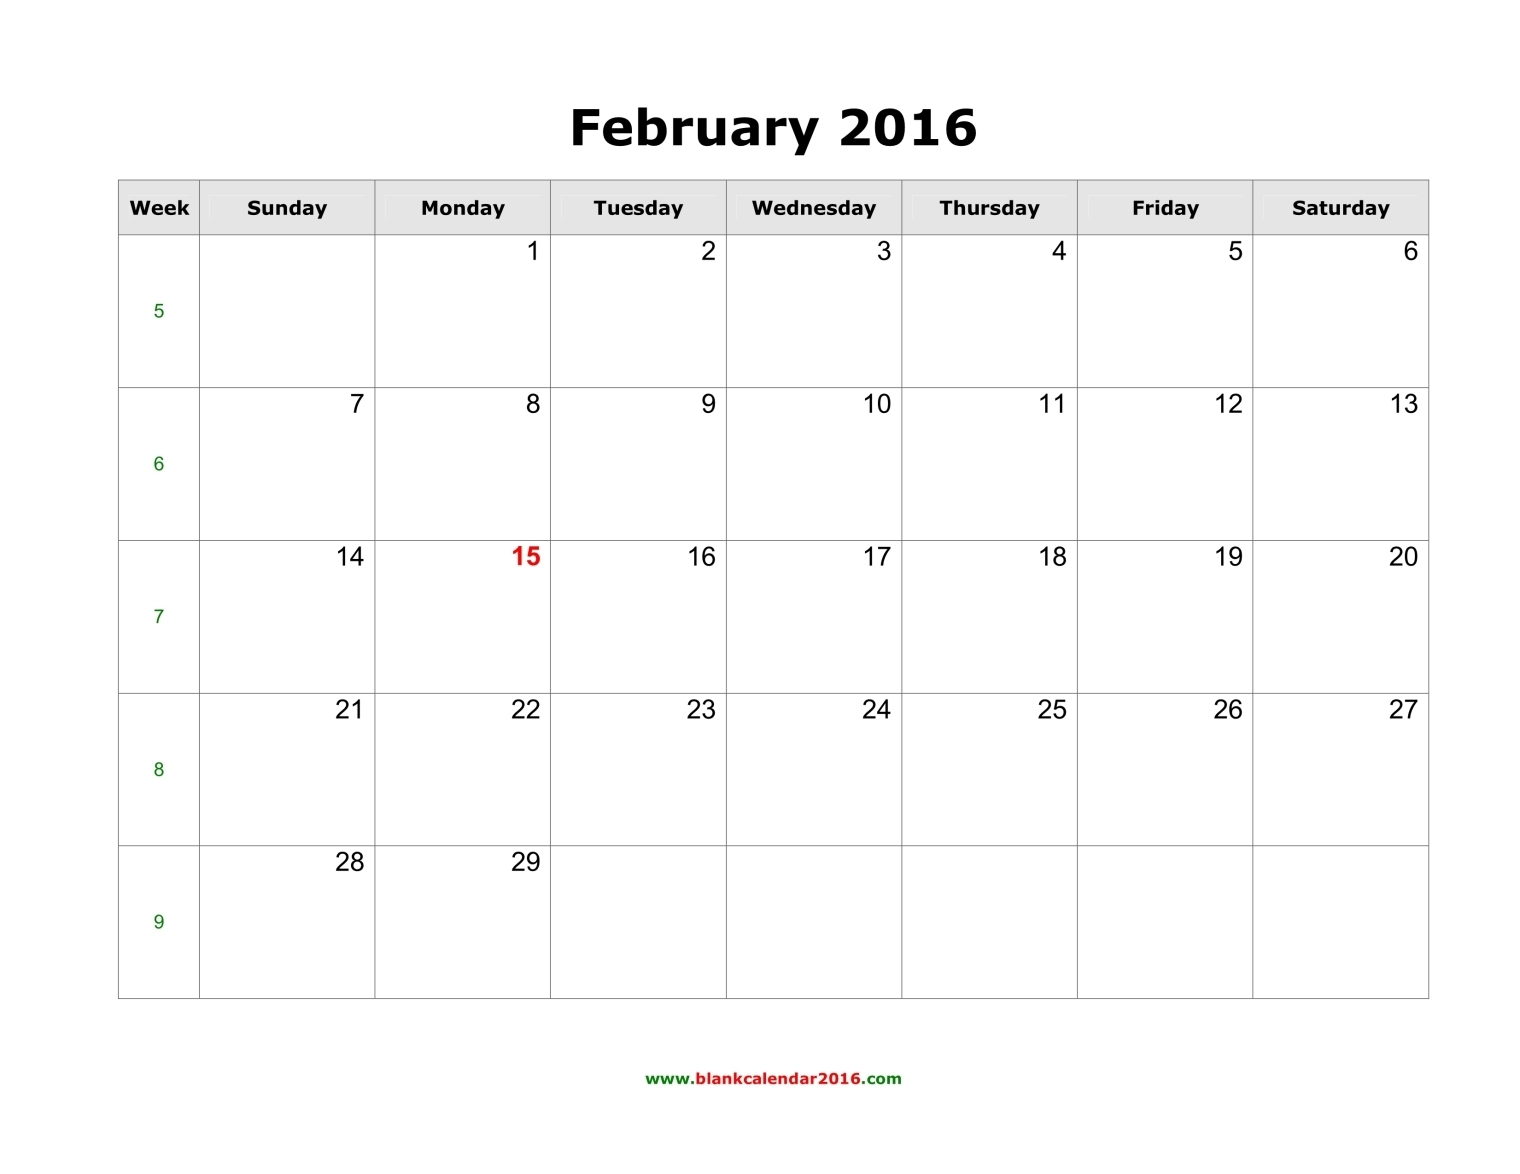 February 2016 Calendar Printable Template (8 Templates)